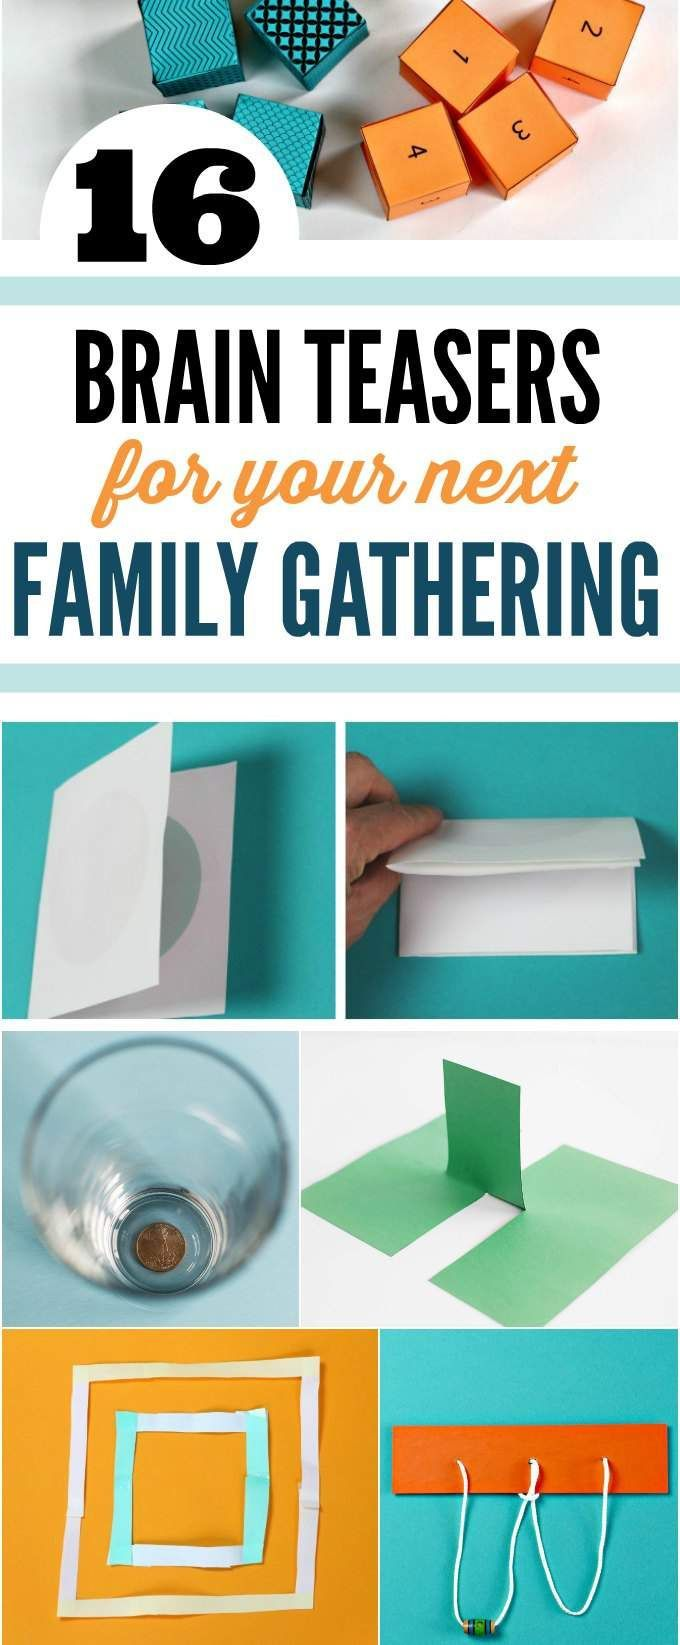 Brain Teasers For Family Gatherings Kids Will Love To Stump The Grownups